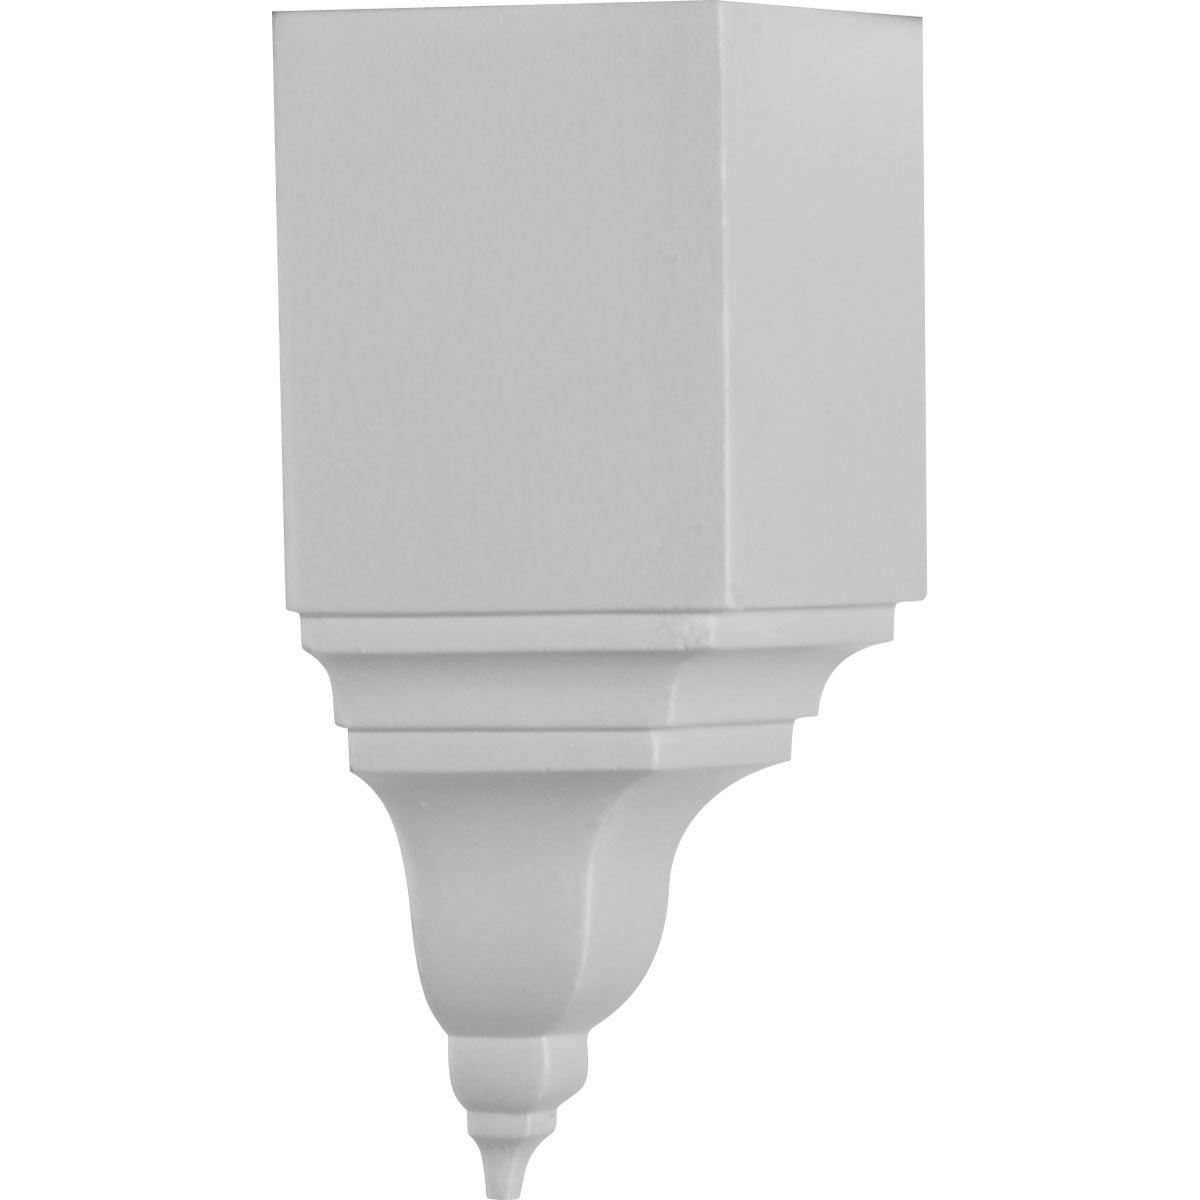 Ekena Millwork MIC03X03BI  3 1/8-Inch P x 7 3/4-Inch H Inside Corner for Molding Profiles Less Than 3 1/8-Inch P and 3 7/8-Inch H